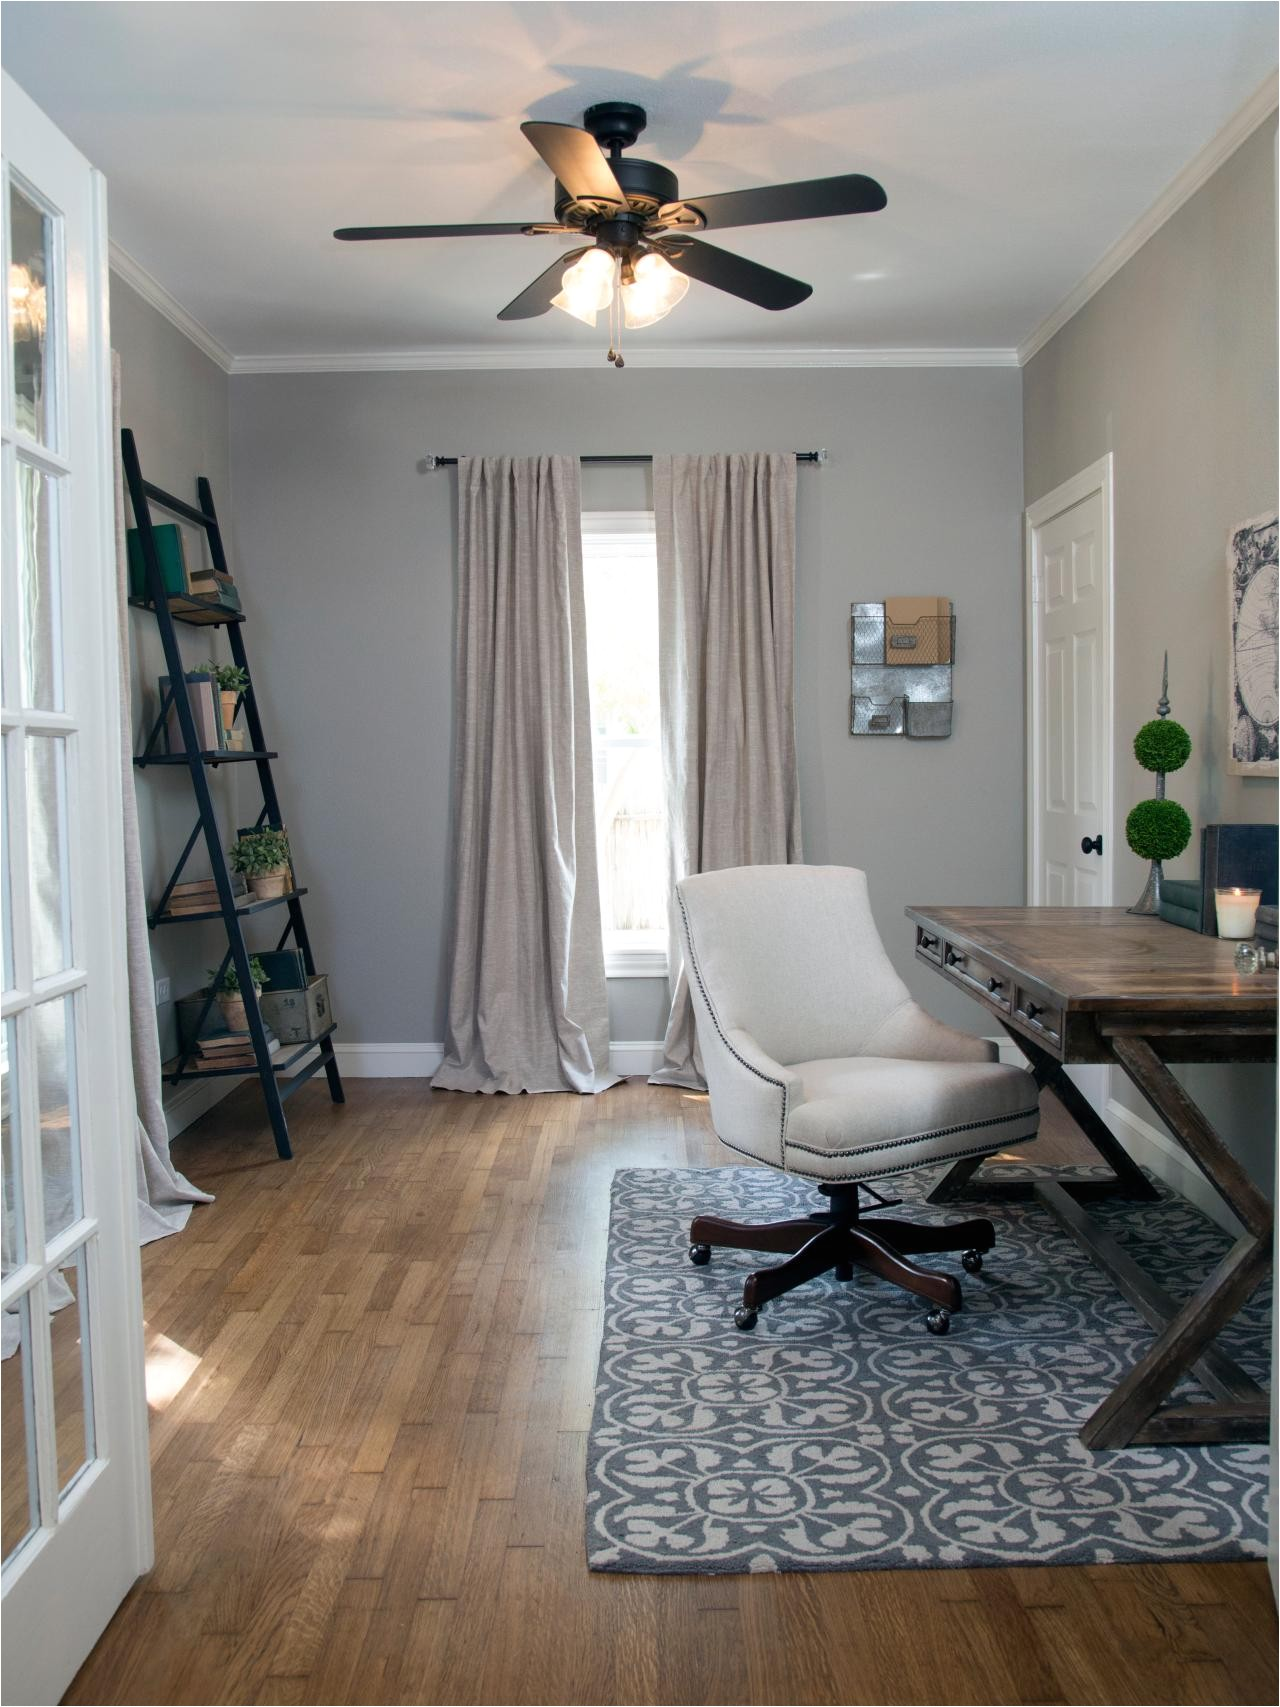 Joanna Gaines Fixer Upper Ceiling Fans Photos Hgtv 39 S Fixer Upper with Chip and Joanna Gaines Hgtv